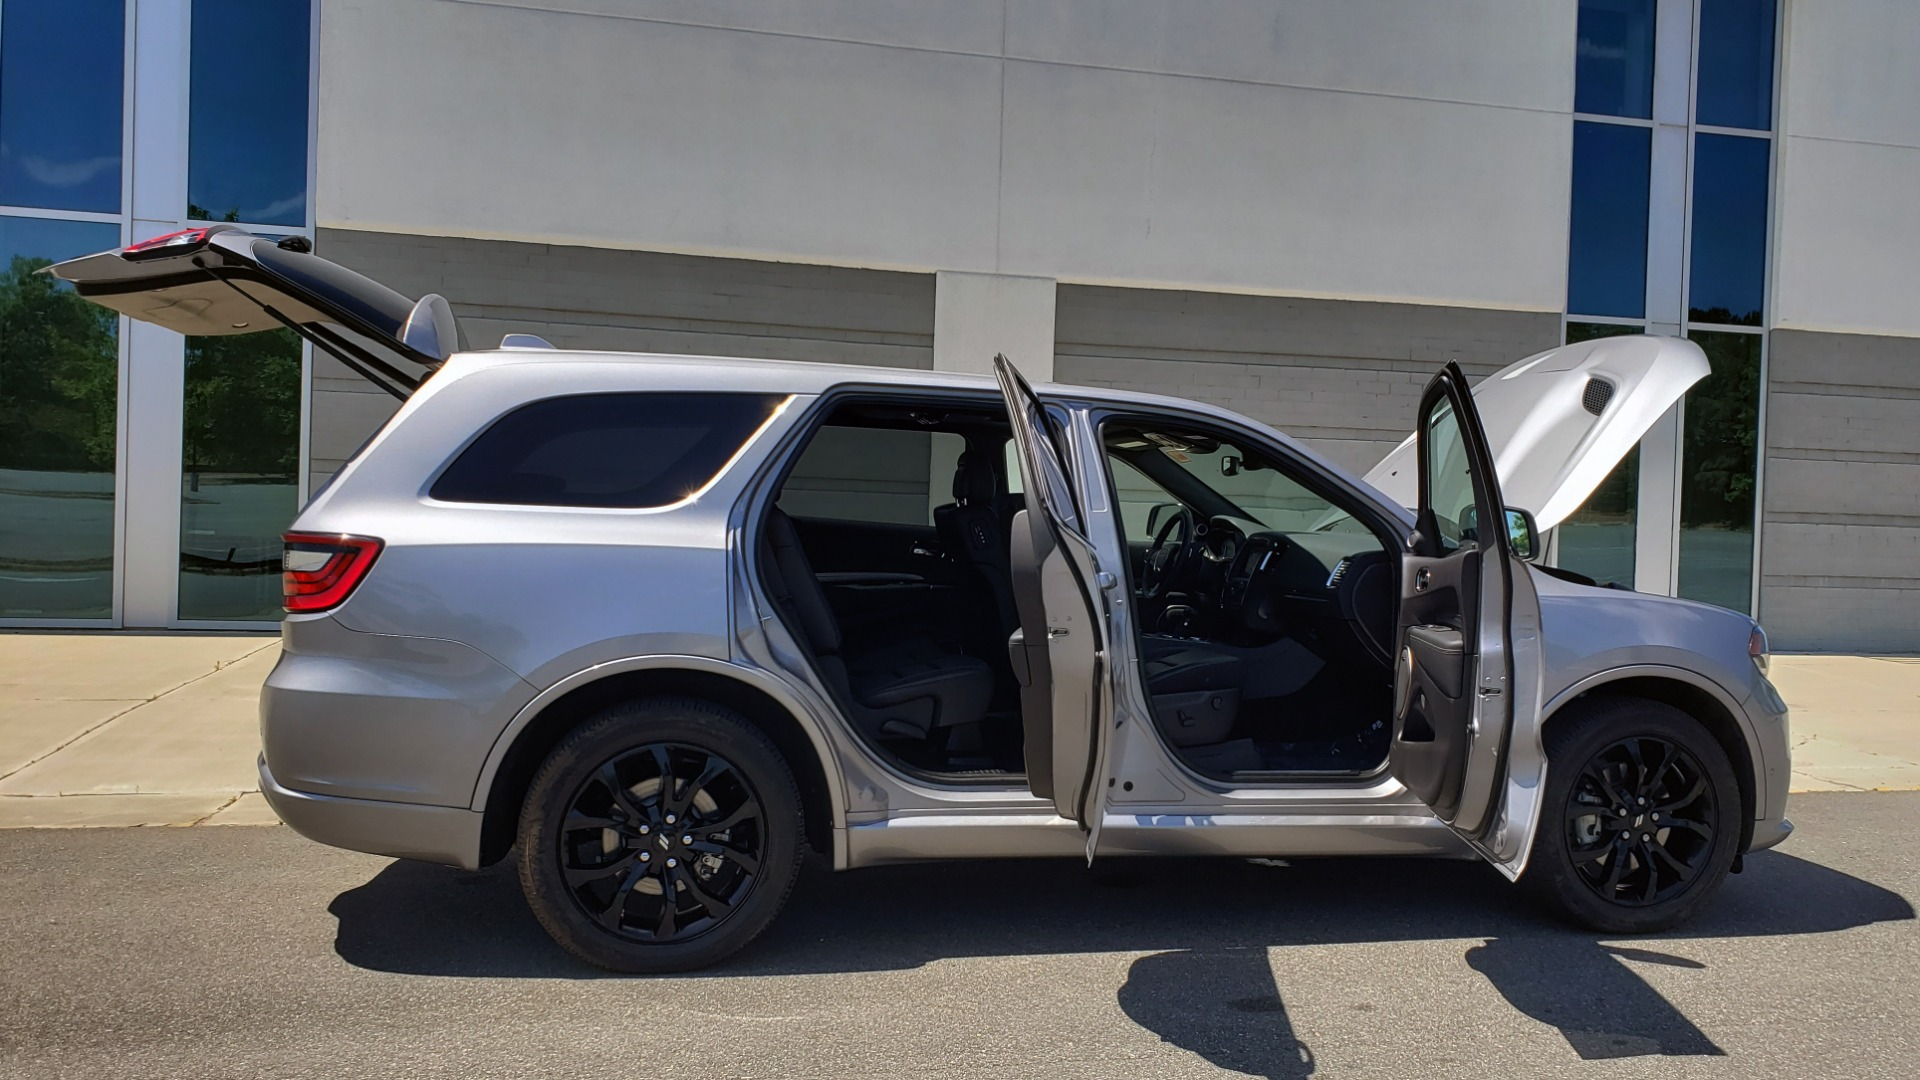 Used 2019 Dodge DURANGO R/T BLACKTOP AWD / TECH / ADAPT CRUS / TOW GROUP / SUNROOF / REARVIEW for sale Sold at Formula Imports in Charlotte NC 28227 12